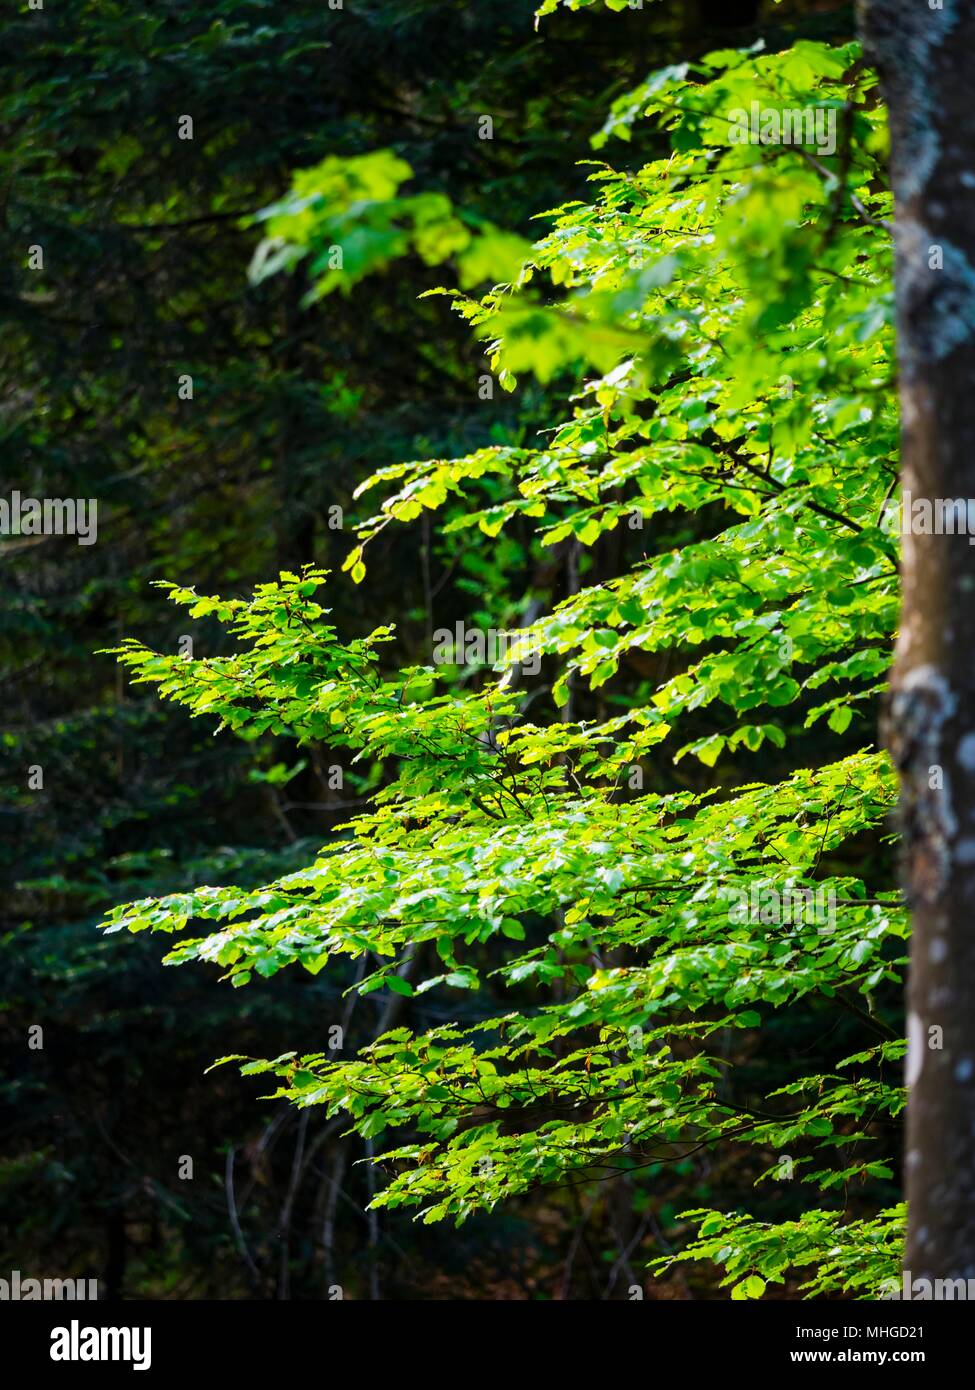 Sunlit Green tree branches - Stock Image